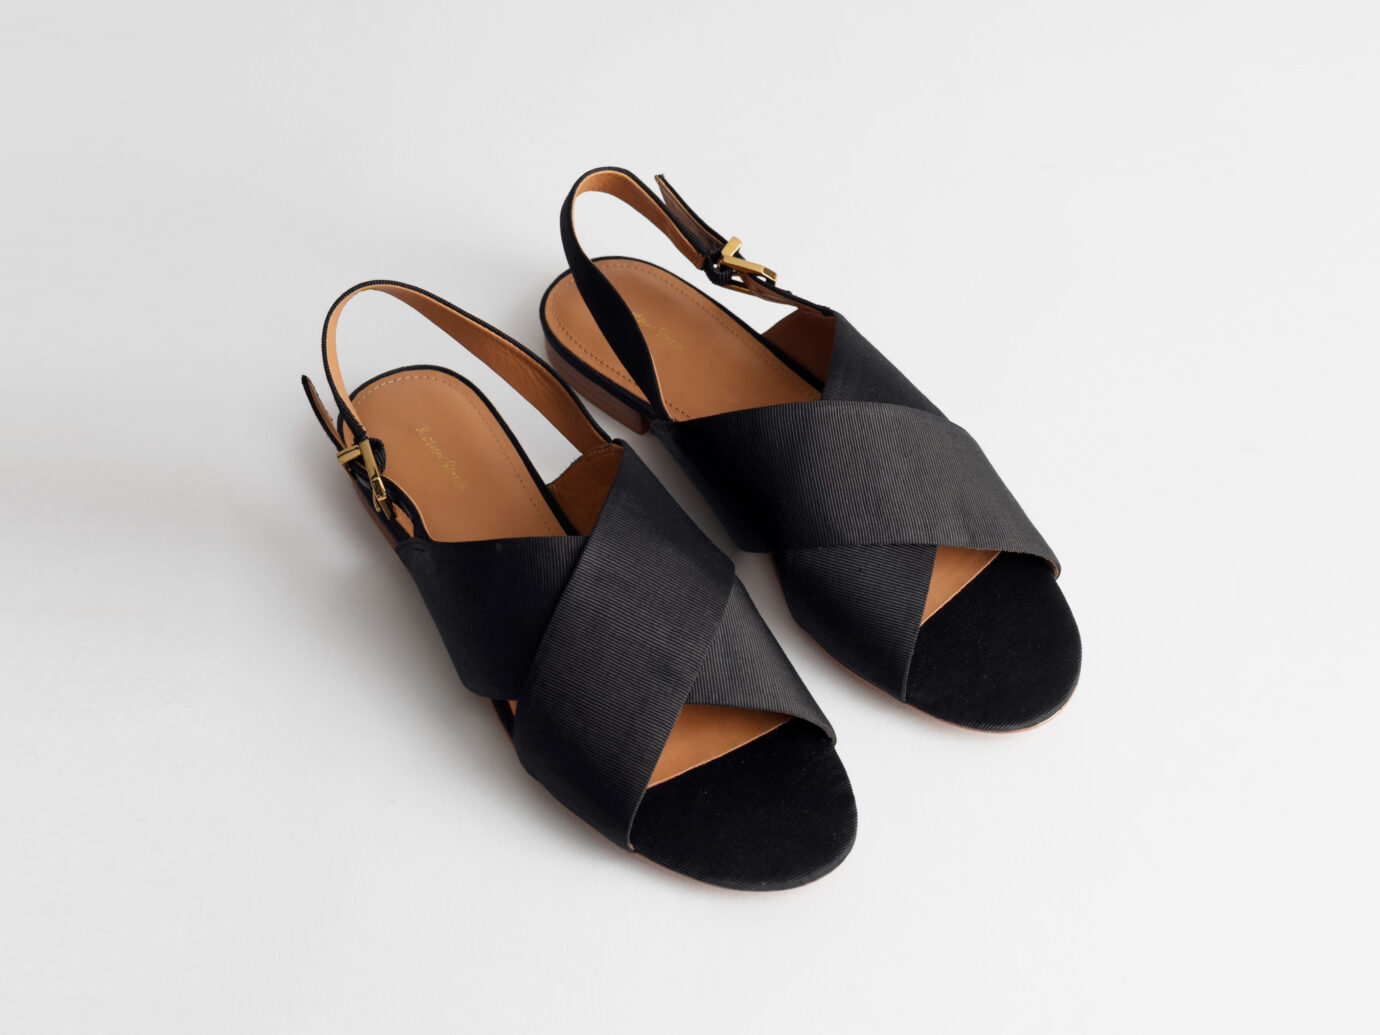 & Other Stories Criss Cross Slingback Sandals